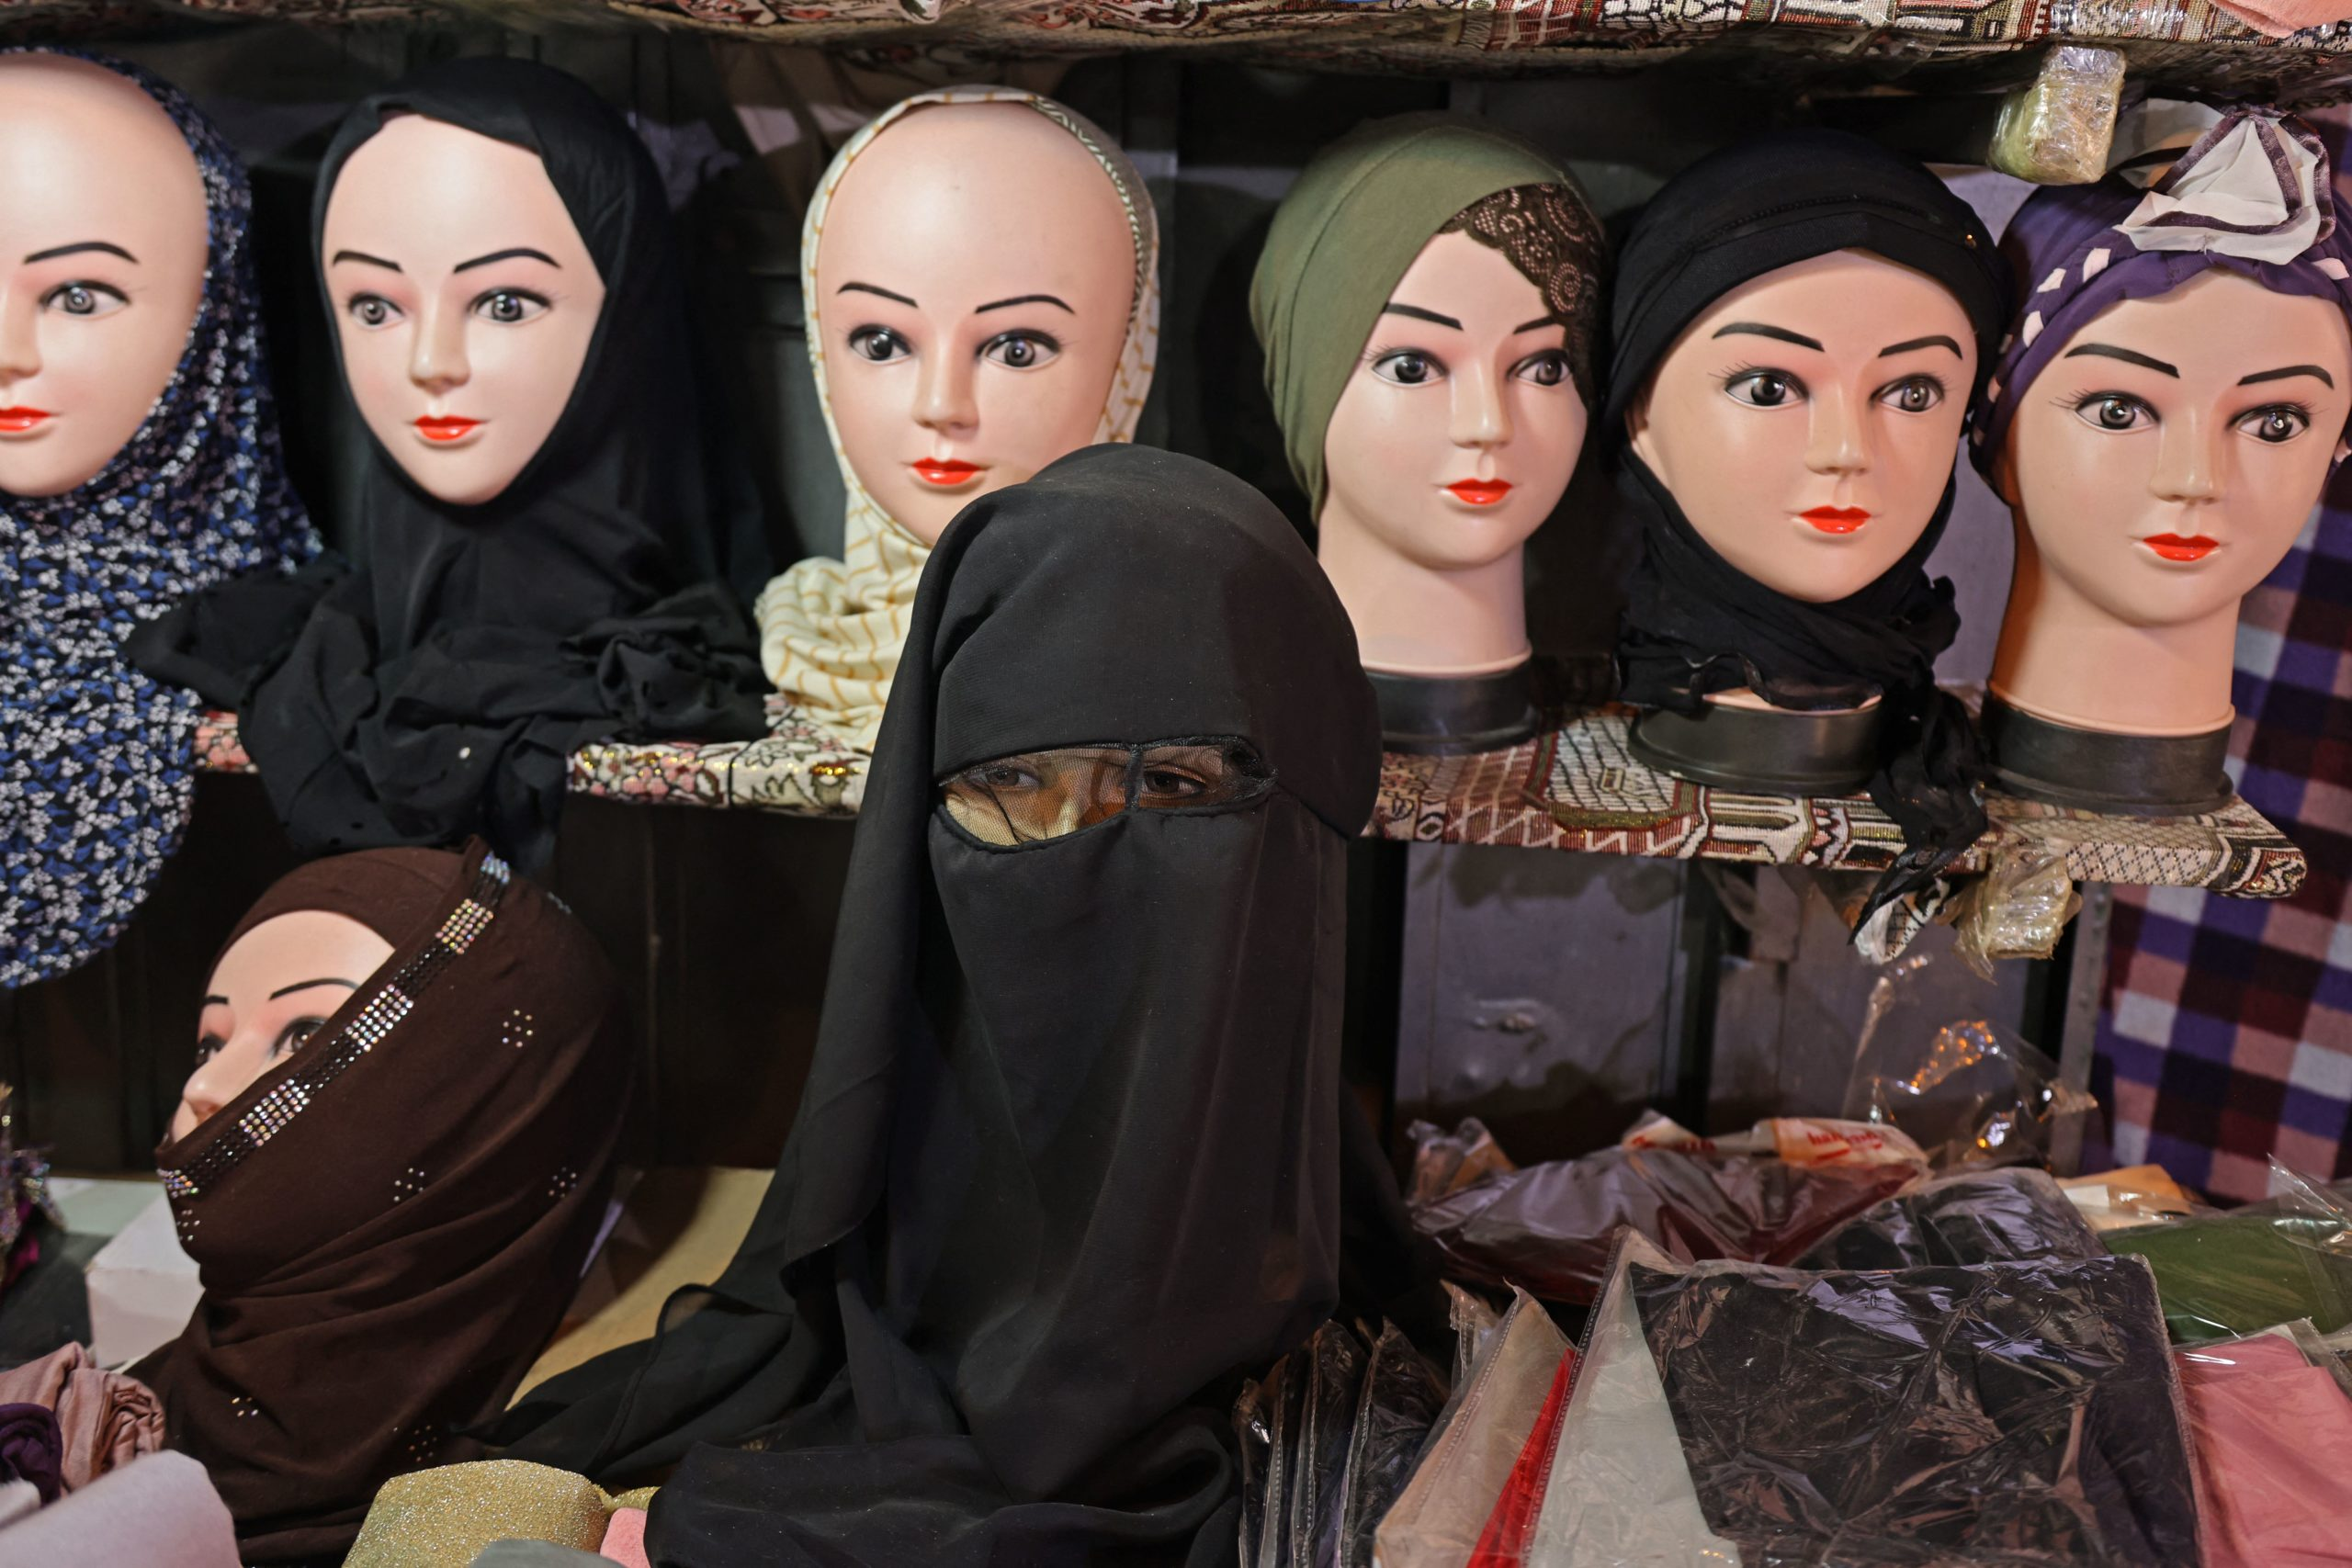 A picture taken at a shop in Jerusalem's Old City on May 14, 2021 shows Muslim headdresses, including a nikab full face cover. (Photo by Ahmad GHARABLI / AFP) (Photo by AHMAD GHARABLI/AFP via Getty Images)